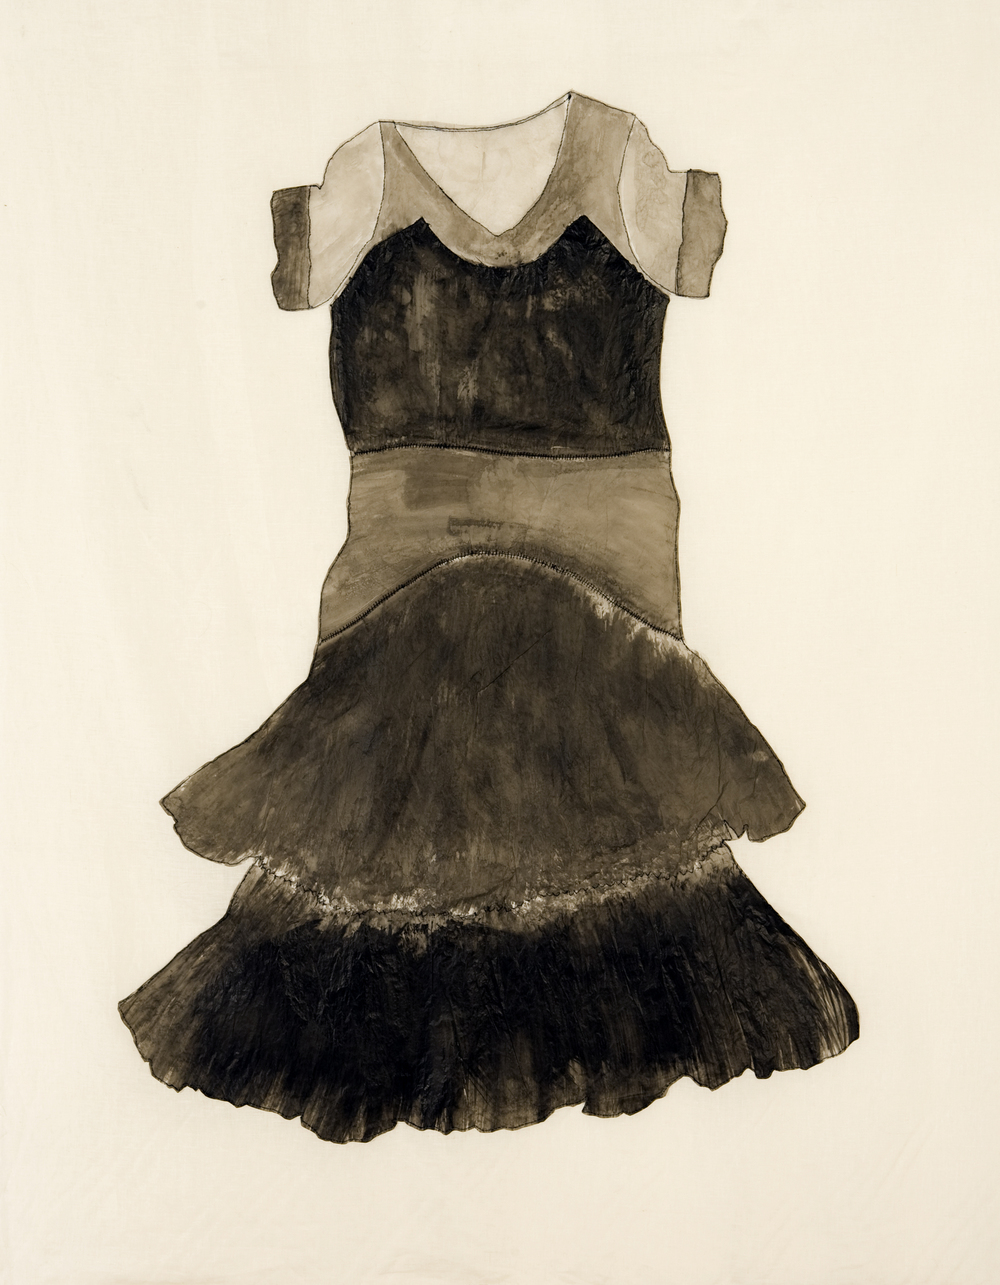 5_Black Dress;D-5SL_2007.jpg